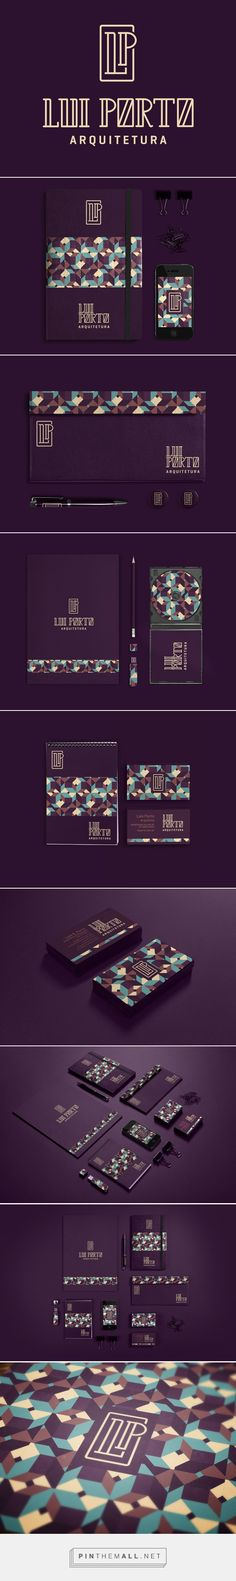 Lui Porto on Behance | Fivestar Branding – Design and Branding Agency &…